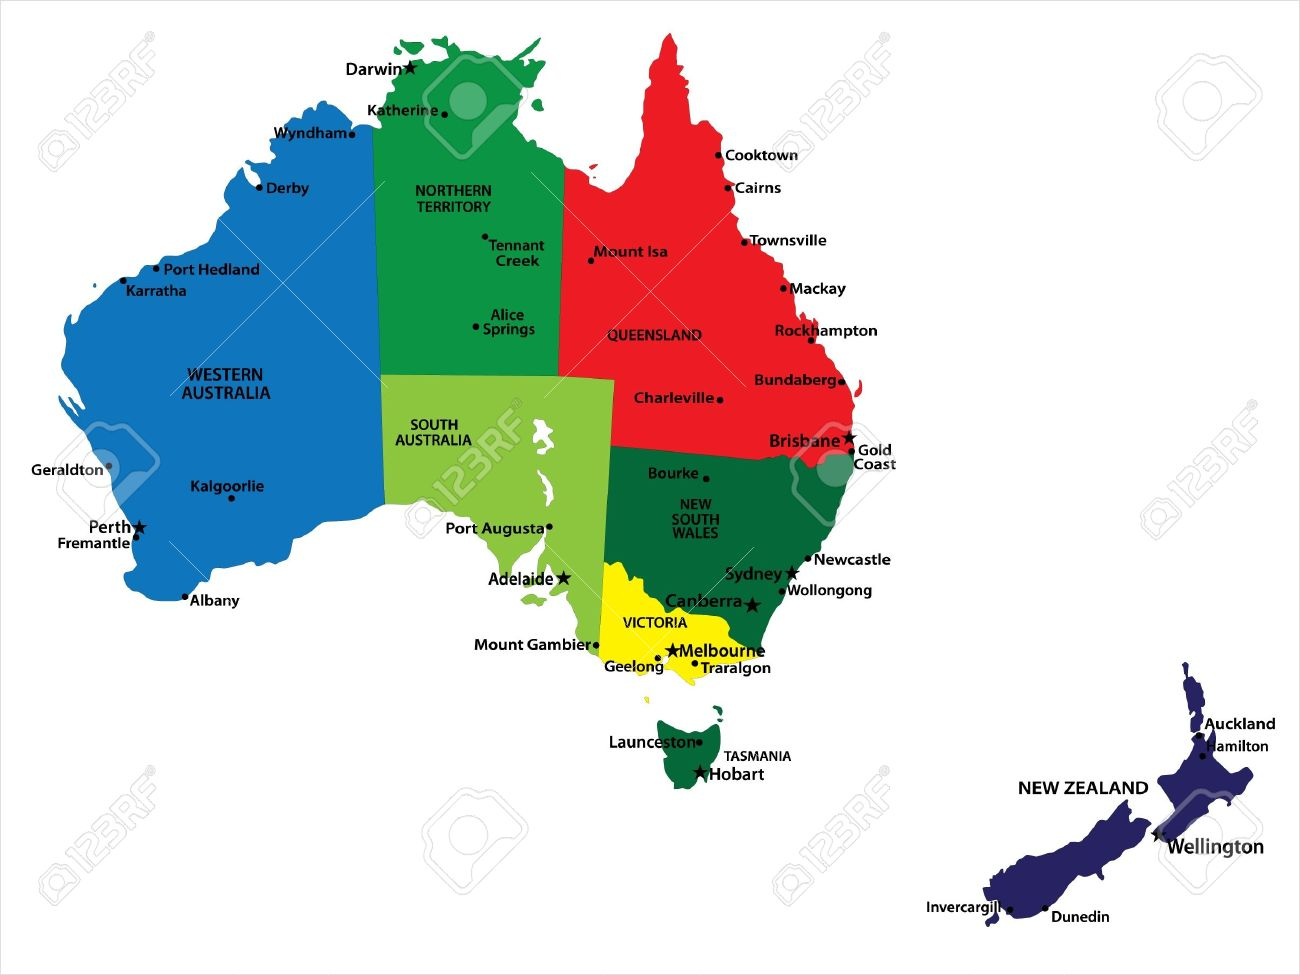 Australia And New Zealand Map Australia And New Zealand Map Royalty Free Cliparts, Vectors, And